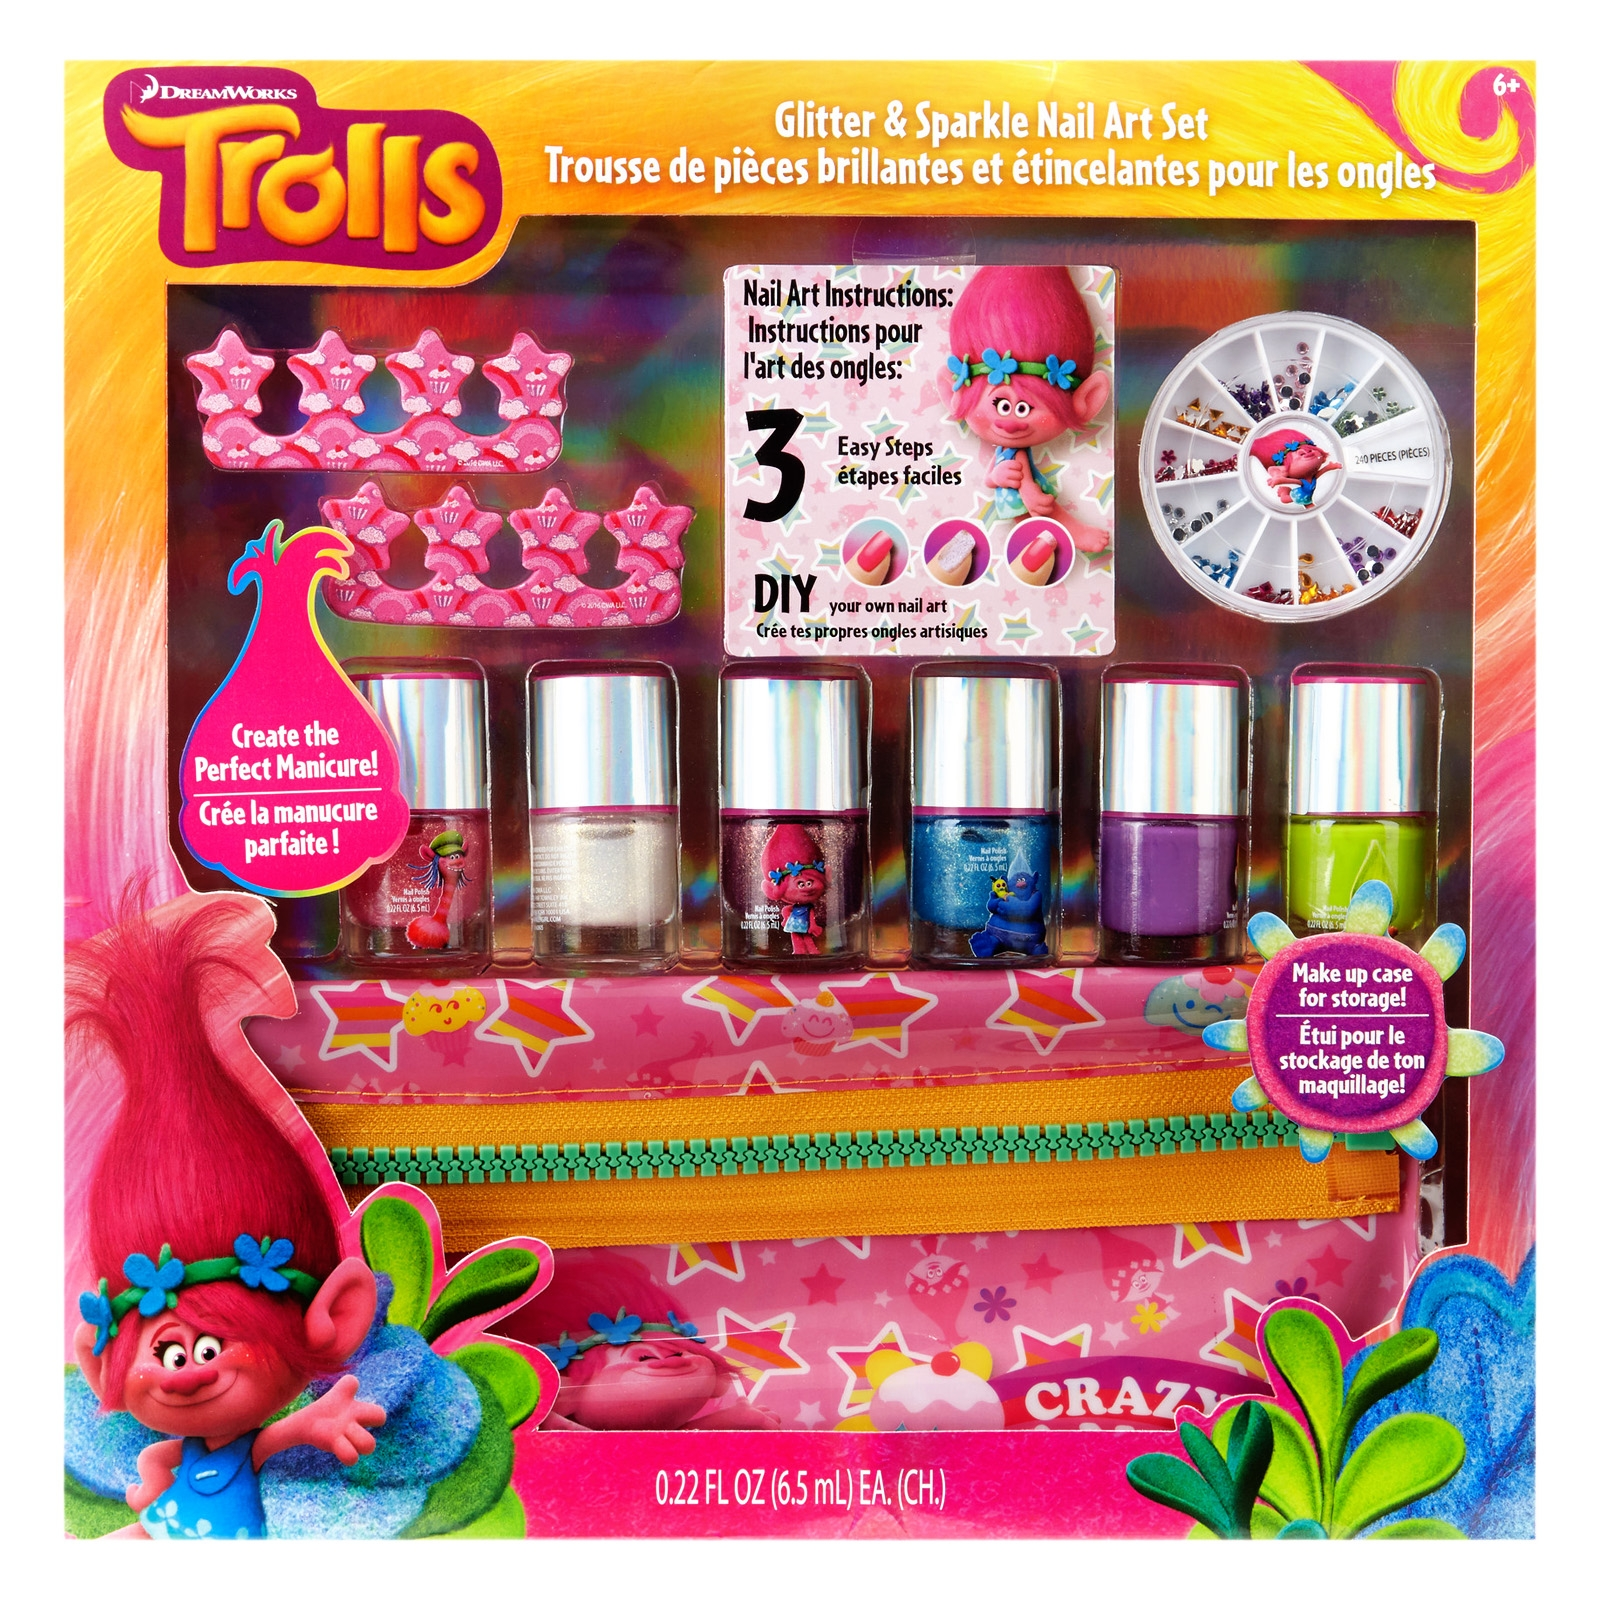 Dreamworks Trolls DIY Nail Art Tutorial 11pc Kit